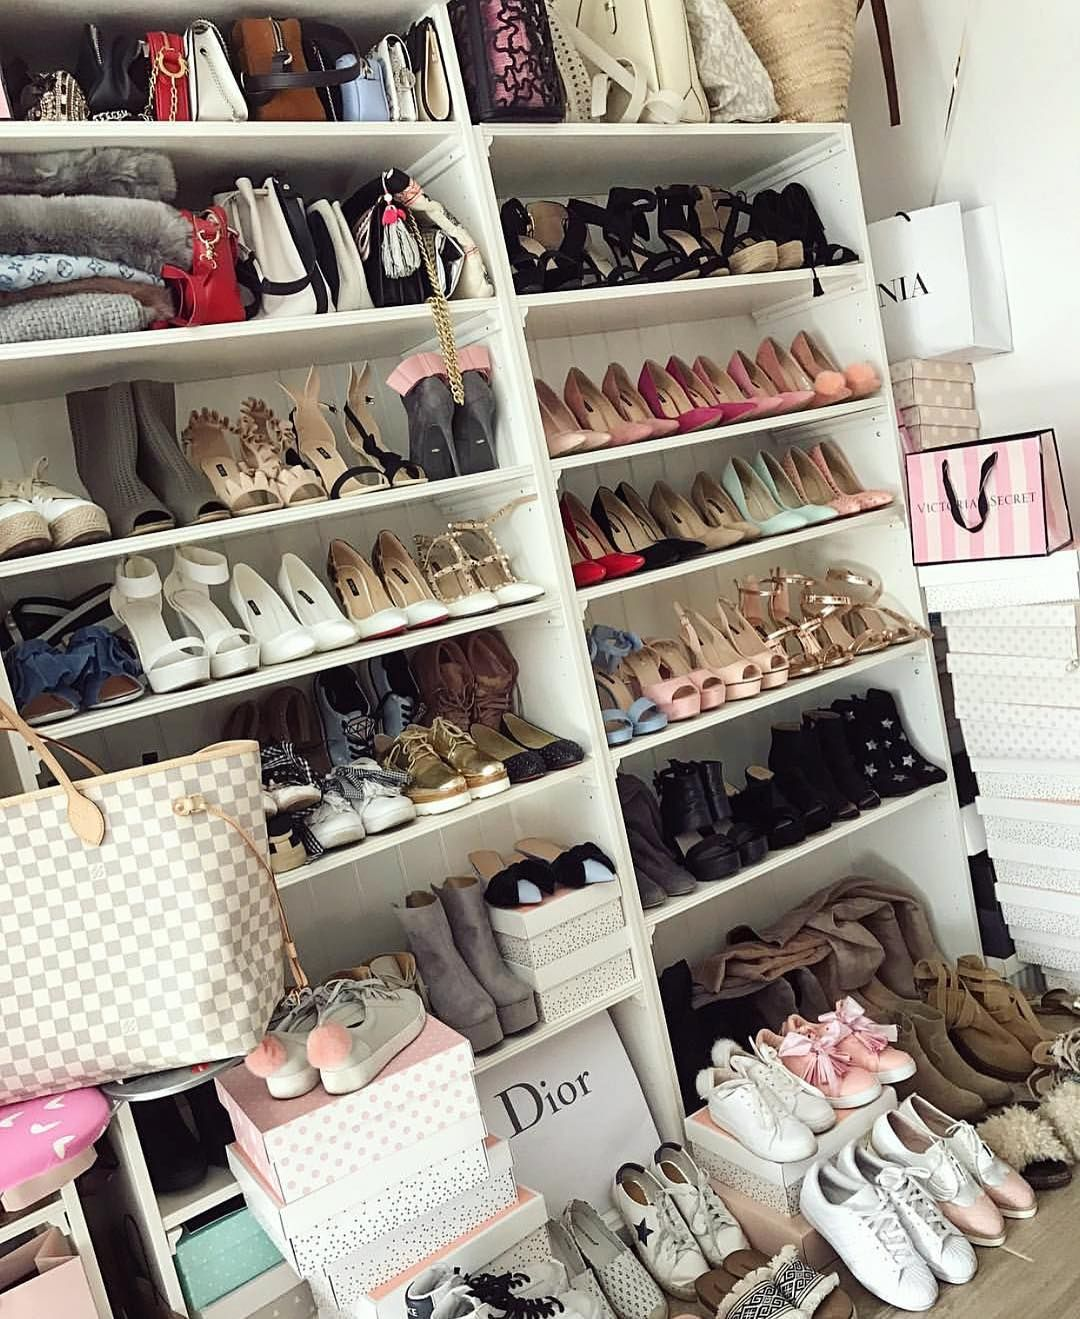 8 291 Likes 35 Comments Every Girl Is Worth A Million Millionmamas On Instagram Small Shoe Collection X Mi Small Shoes Sneaker Storage Room Closet